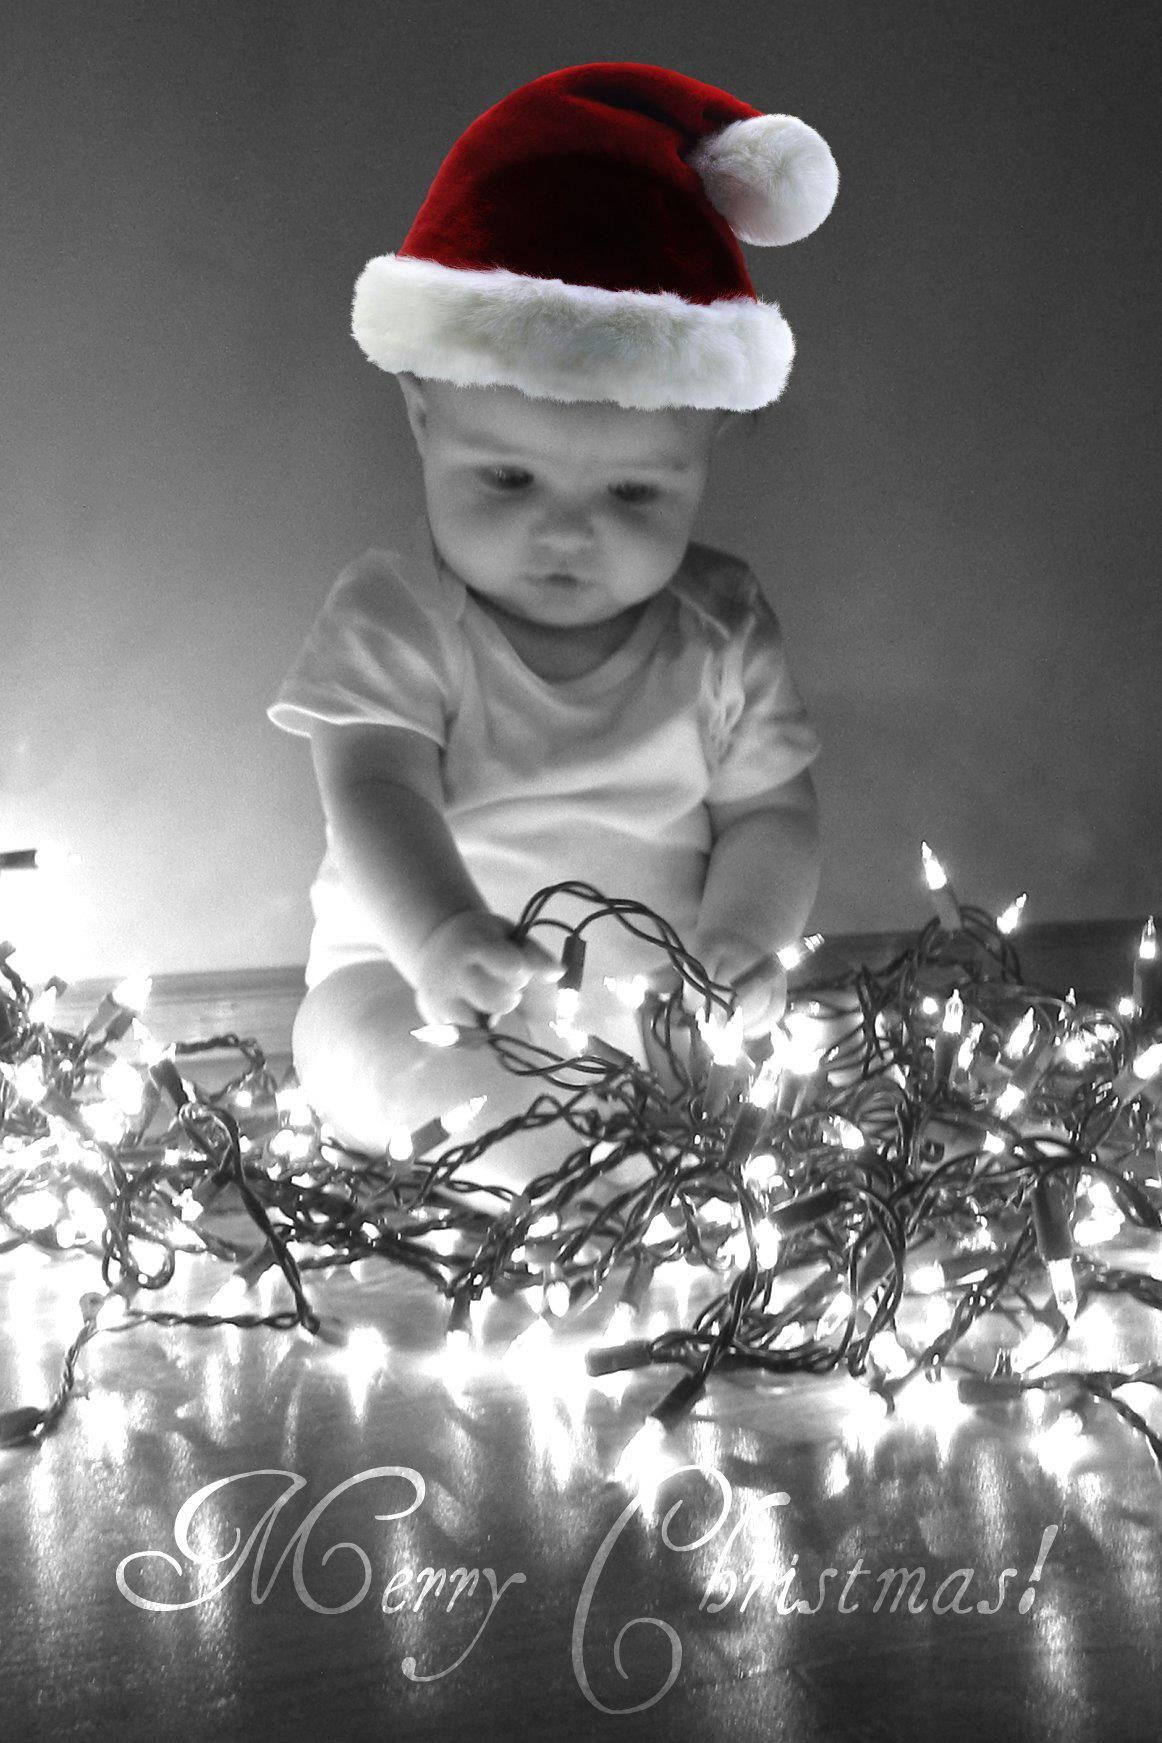 What A Cute Christmas Card Idea. Since Ainsley Will Be 9 Months For  Christmas.this Looks Like An Awesome Christmas Card This Year.